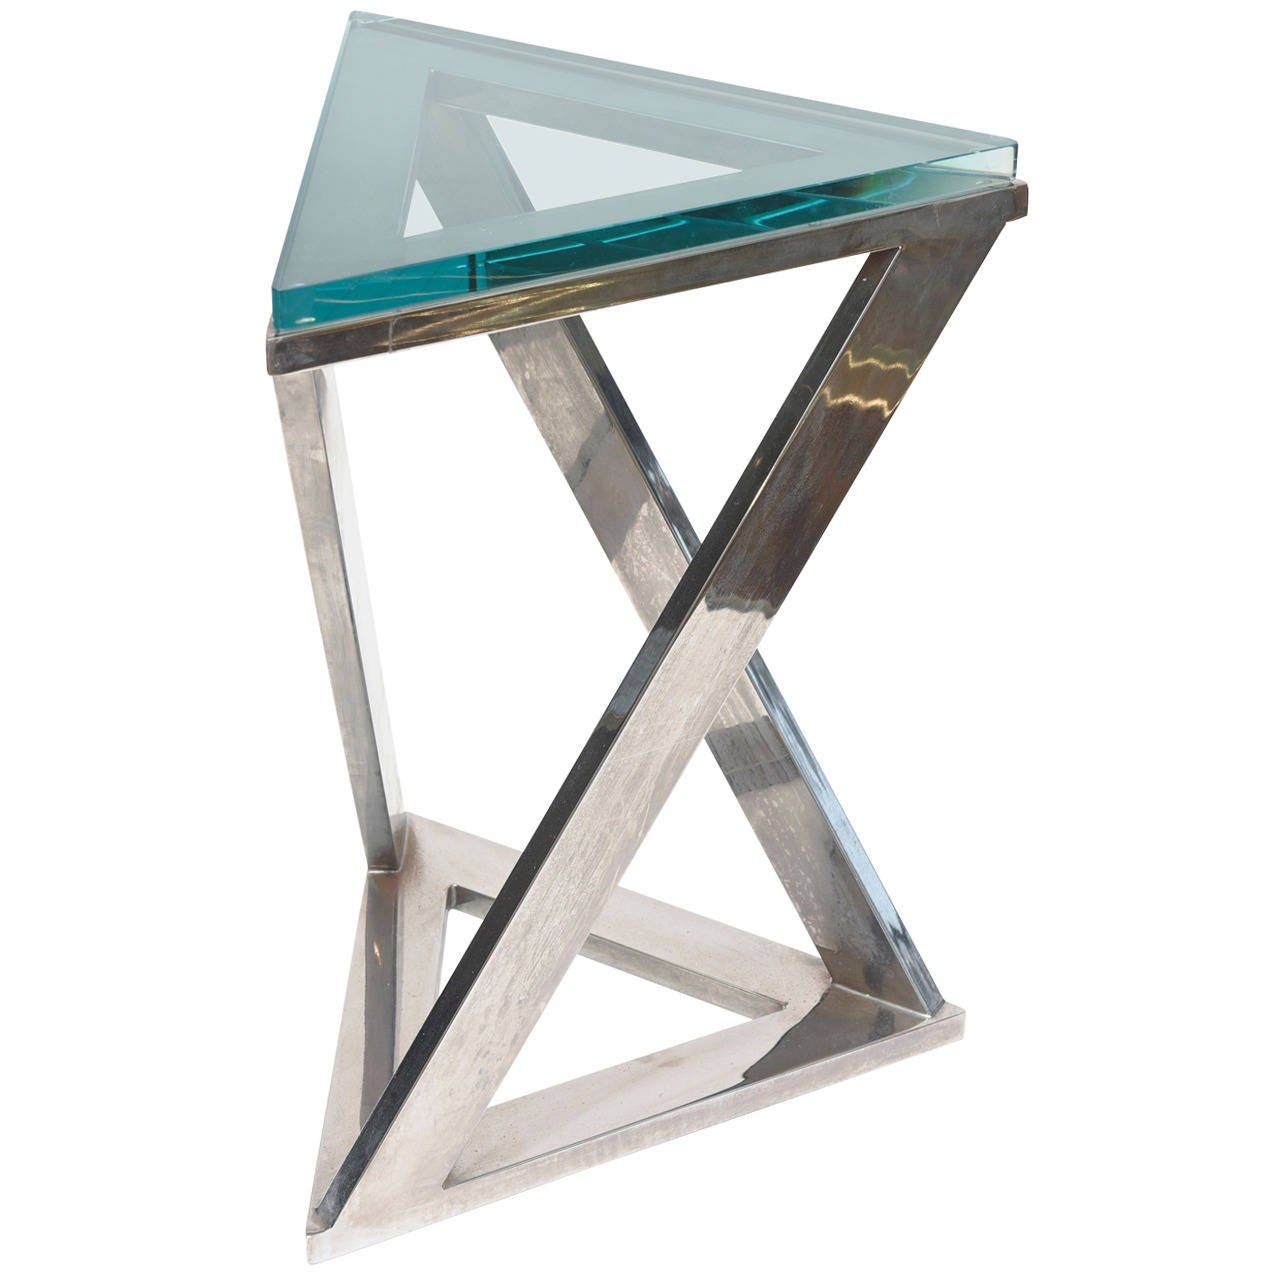 sculptural triangle pace side or drink table with triangle green  - sculptural triangle pace side or drink table with triangle green glass